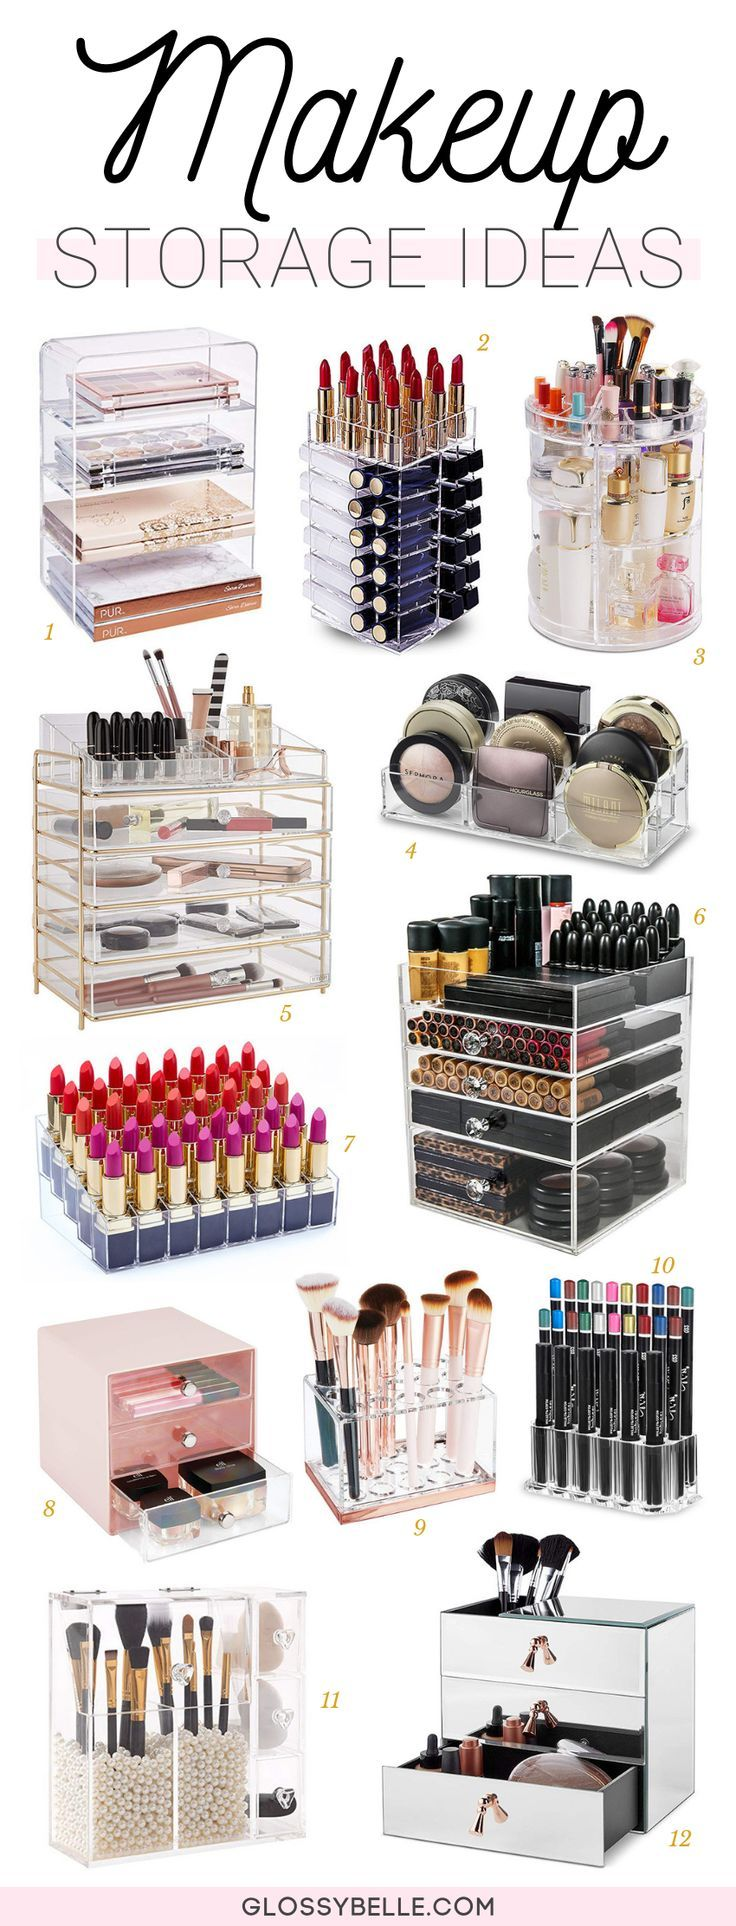 21 Makeup Storage Ideas To Organize Your Vanity – Glossy Belle